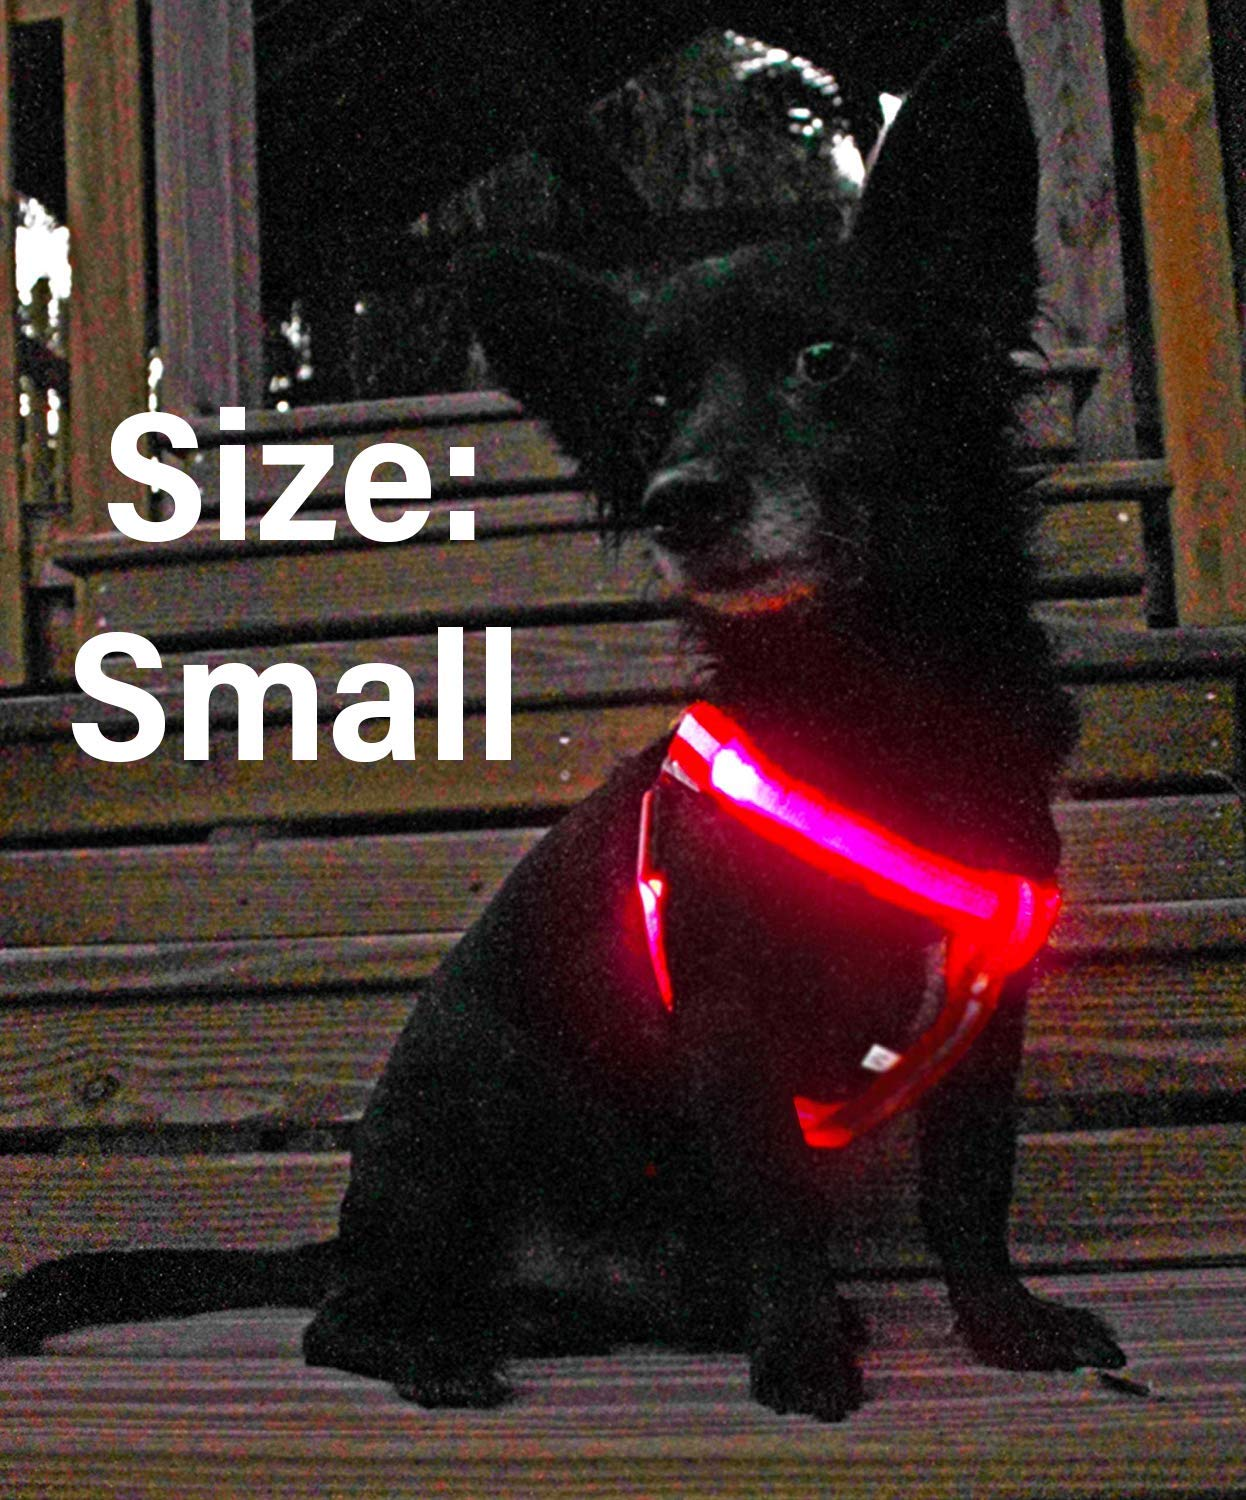 LED Dog Harness No-Pull, USB Rechargeable Outdoor Lightweight Reflective  Pet Vest Harness Adjustable Belt Suit Small, Medium, Large Dogs - Red